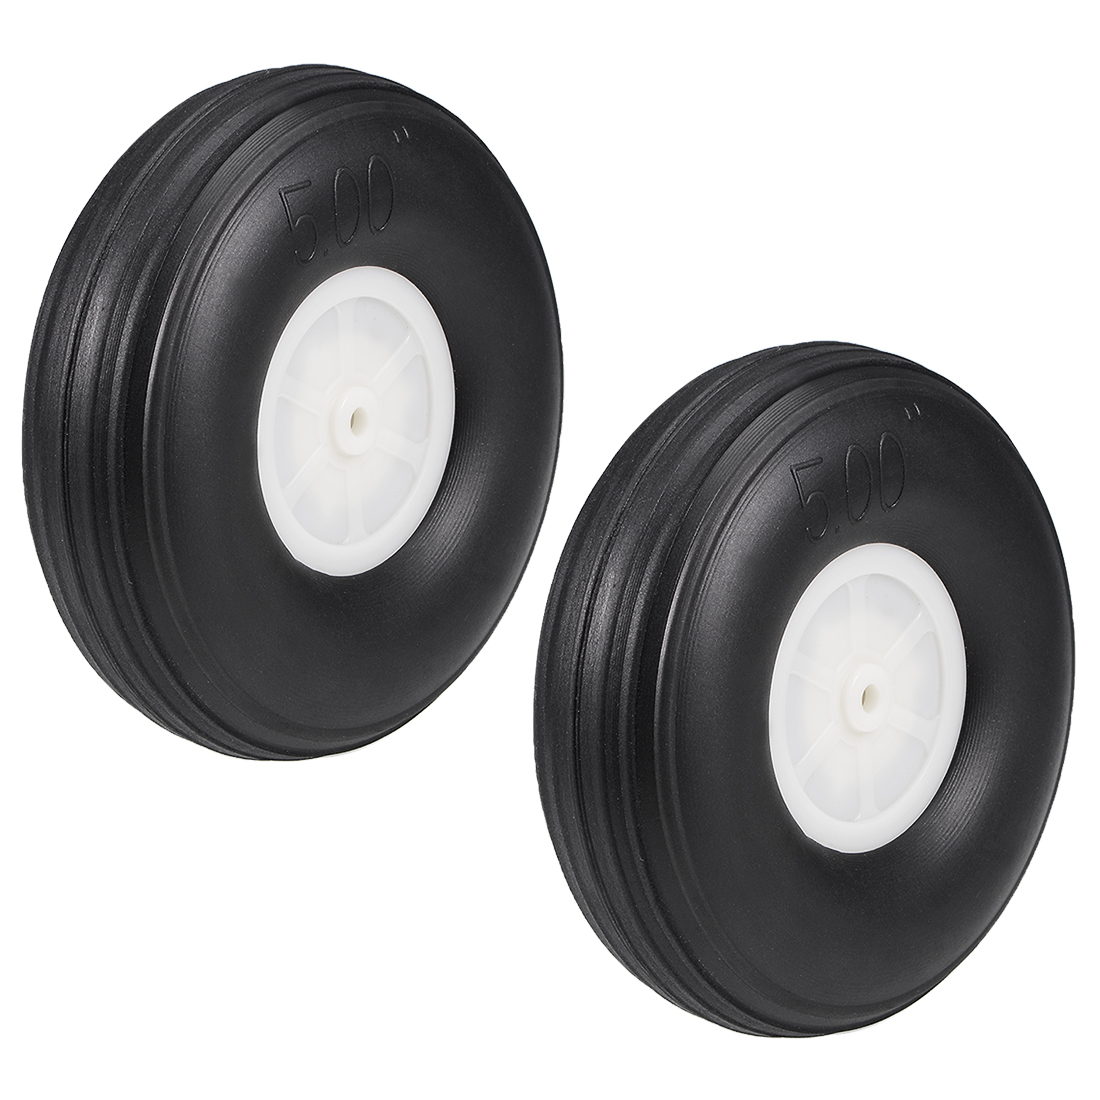 "Tire and Wheel Sets for RC Car Airplane,PU Sponge Tire with Plastic Hub,5"" 2pcs"